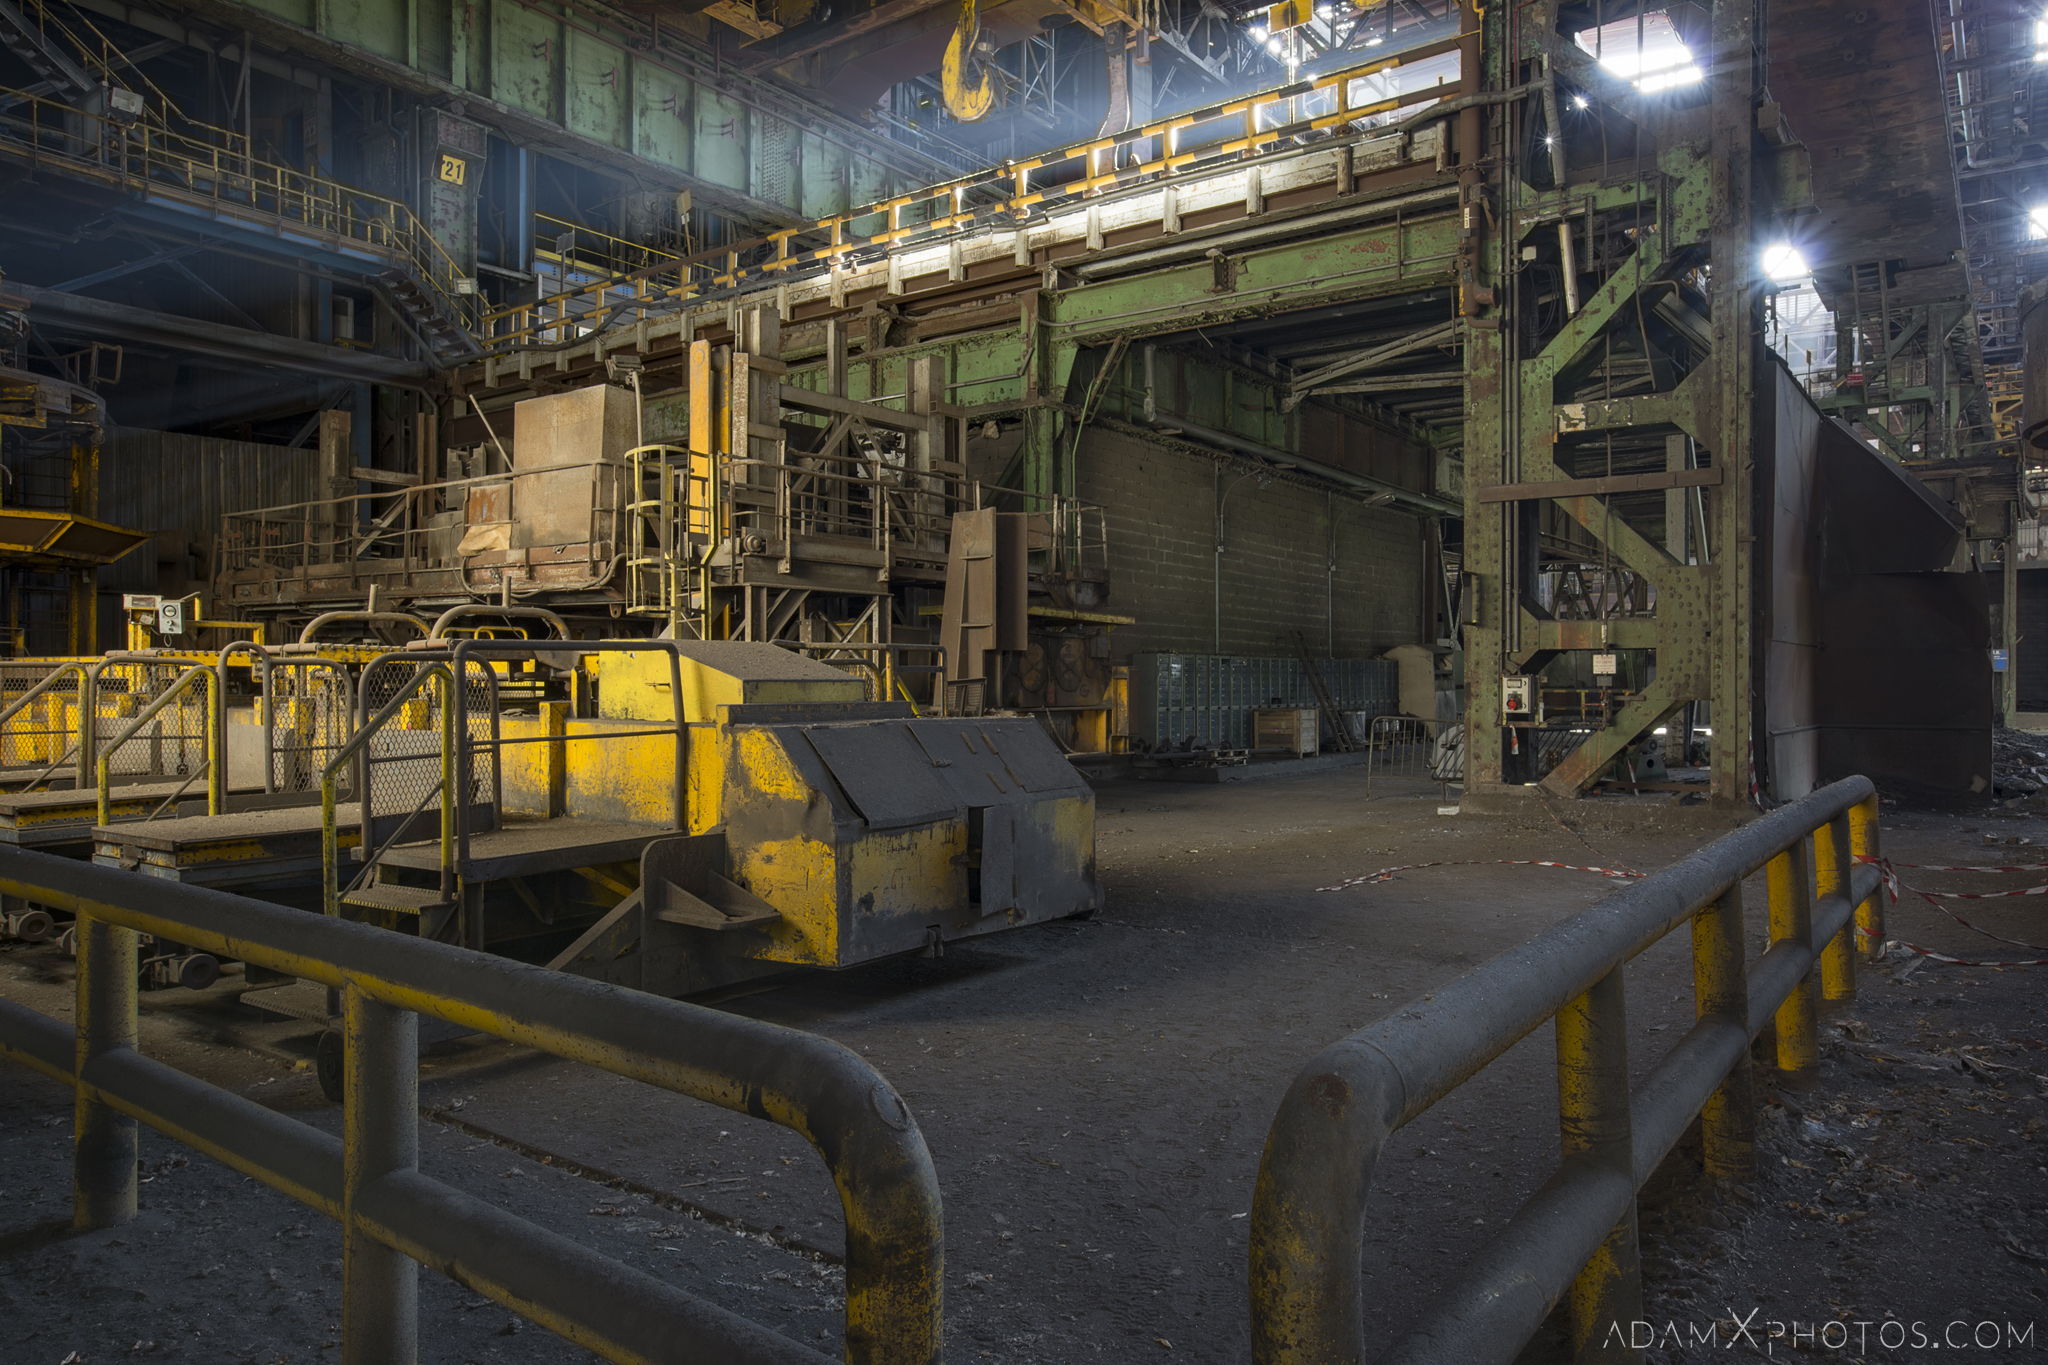 steel works HFX Florange Hayange ArcelorMittal blast furnaces steel works plant Industrial Industry Adam X Urbex Urban Exploration France Access 2017 Abandoned decay lost forgotten derelict location creepy haunting eerie